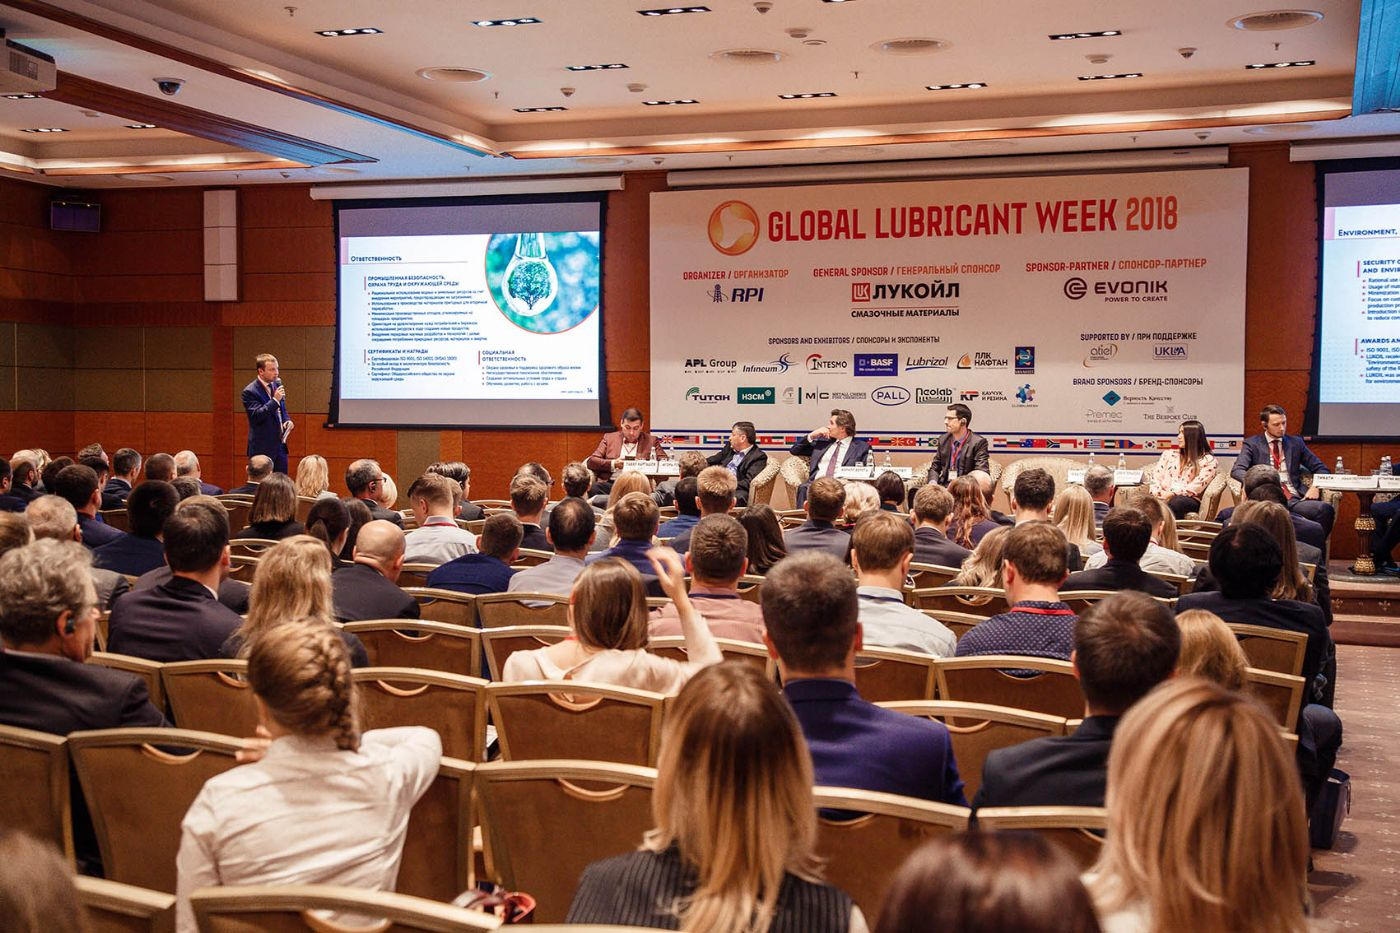 Only 8 weeks left for Global Lubricant Week 2019!